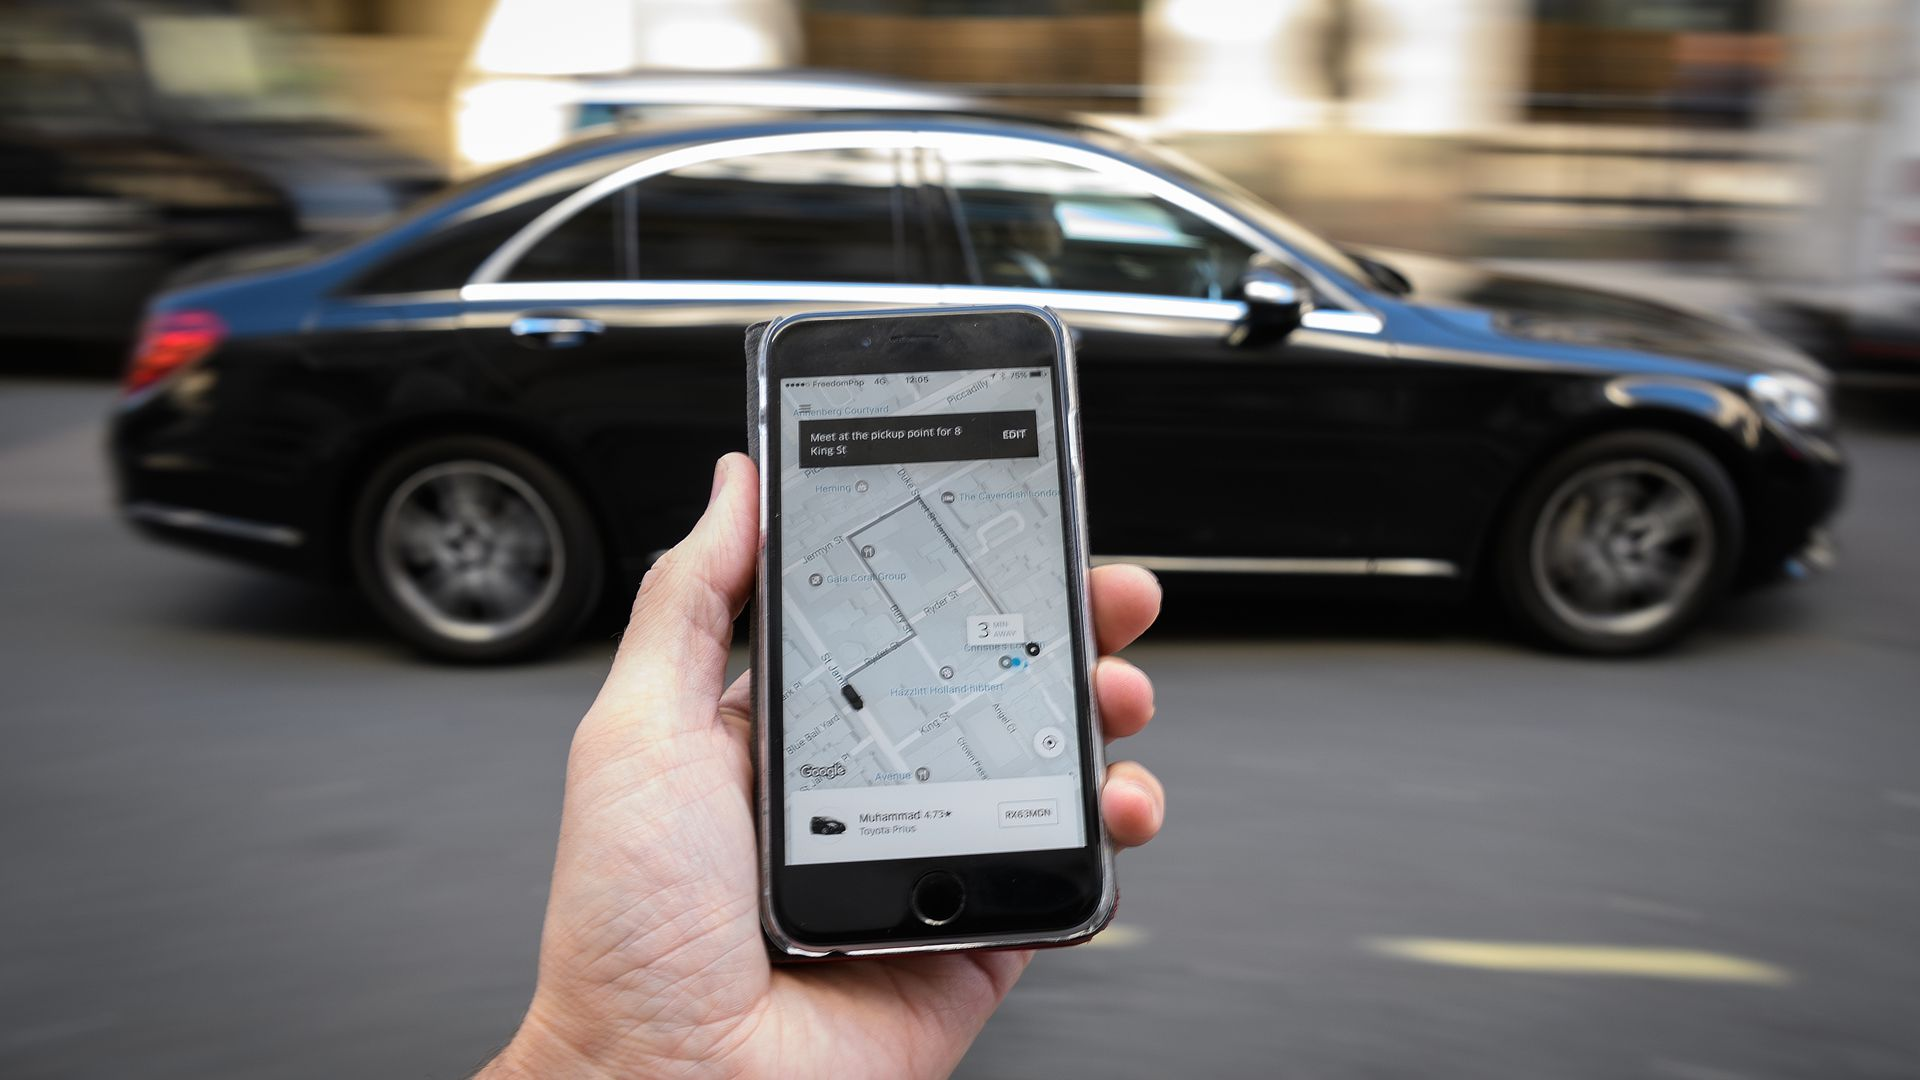 Outstretched hand holds phone with Uber app open